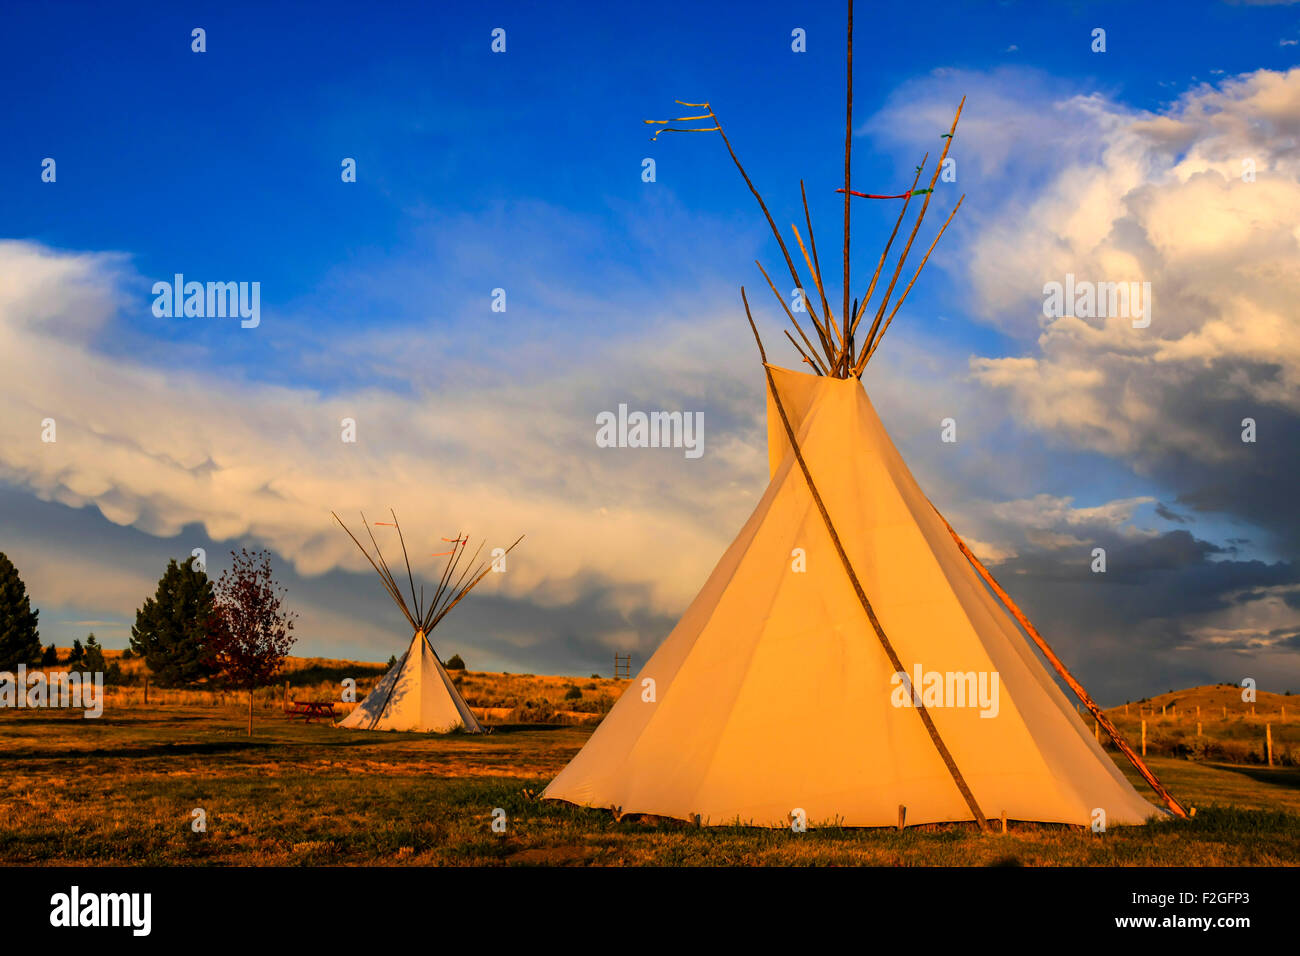 Native American Tepee on the Montana plains at sunset - Stock Image